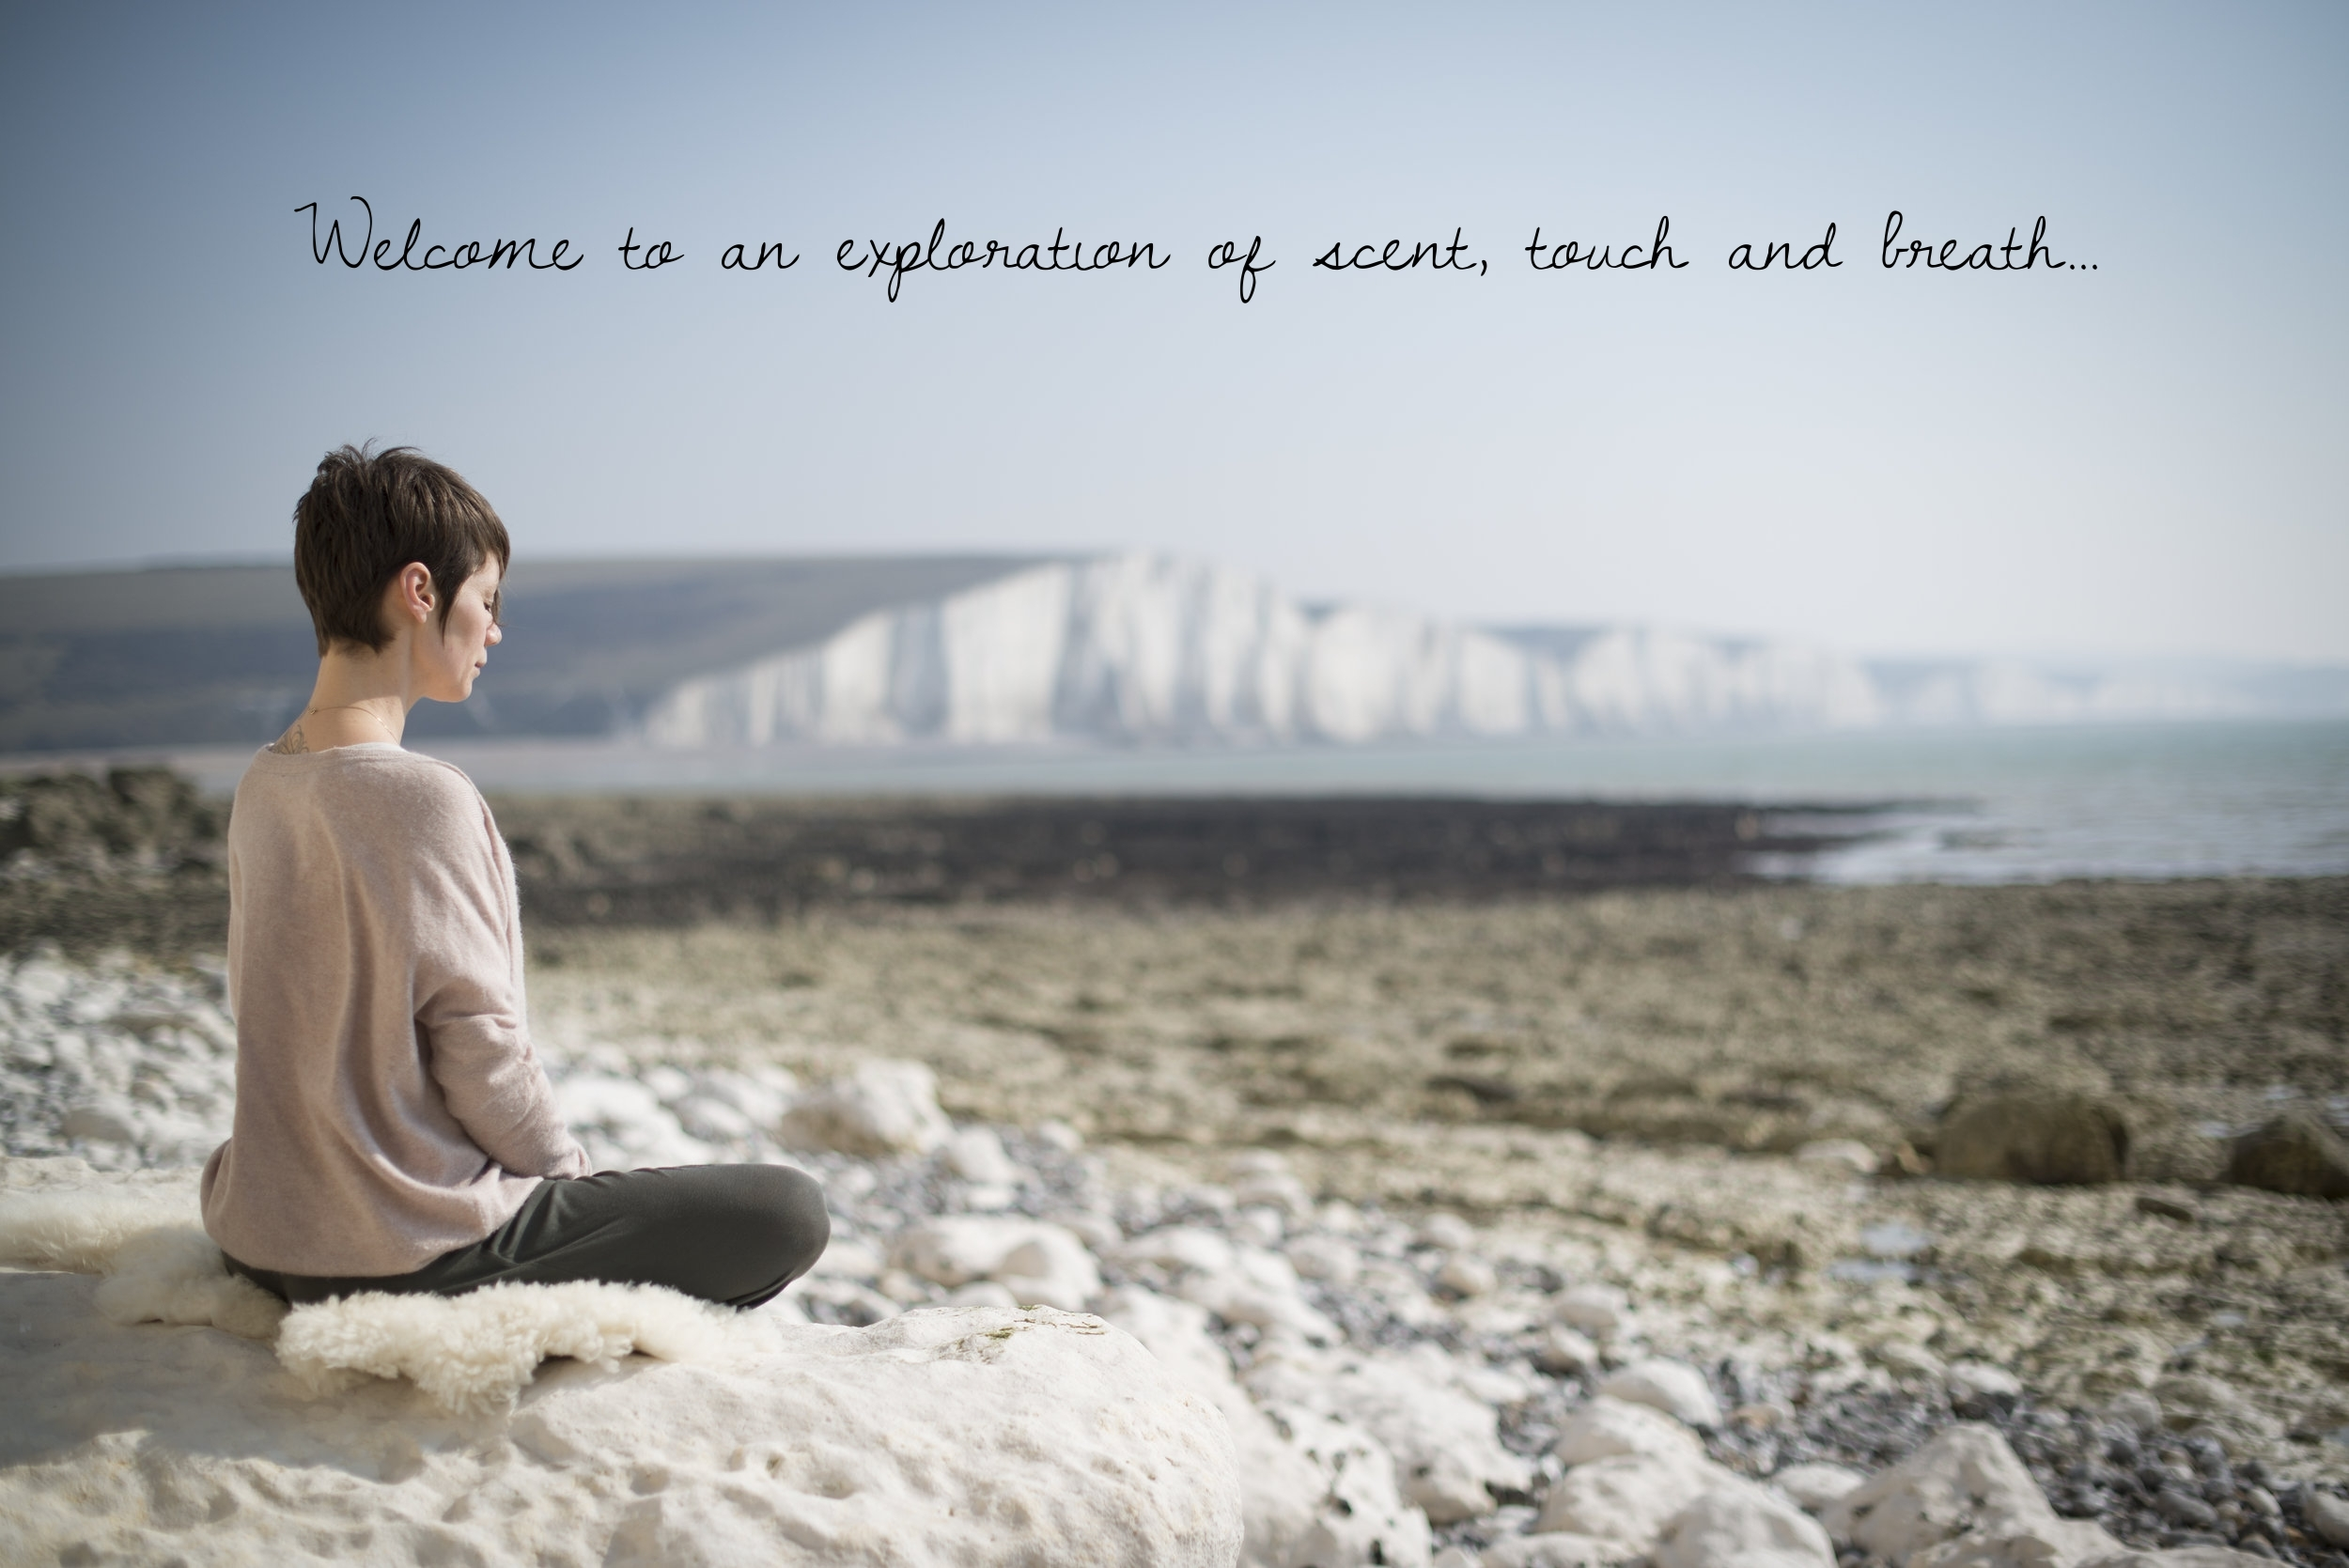 Stillness and Meditation by the Sea